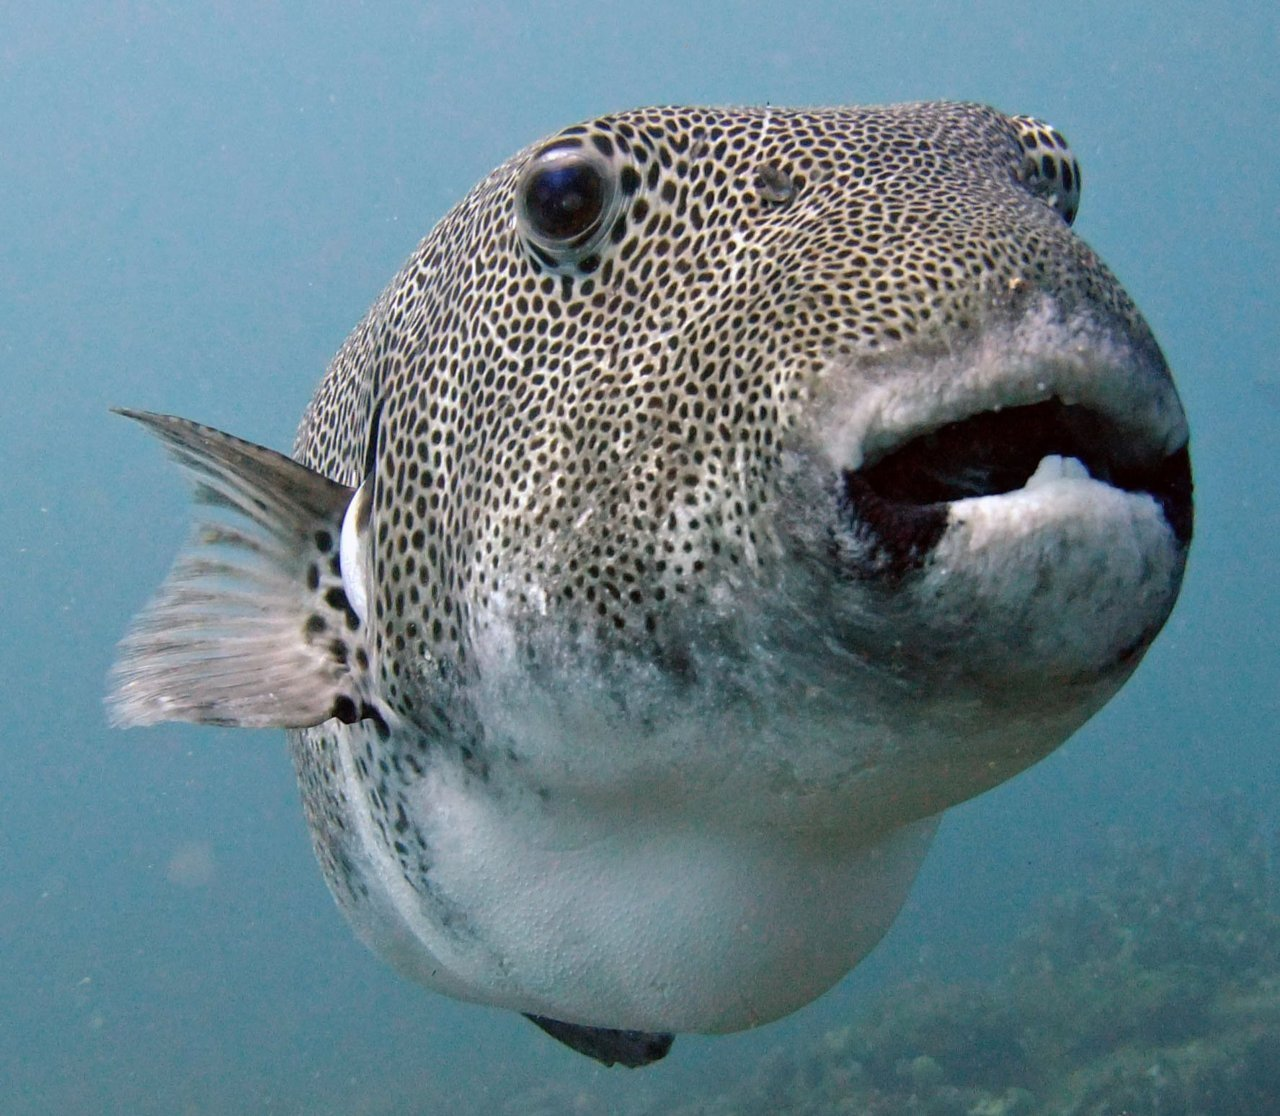 Porcupine Pufferfish by Jurgen Koch